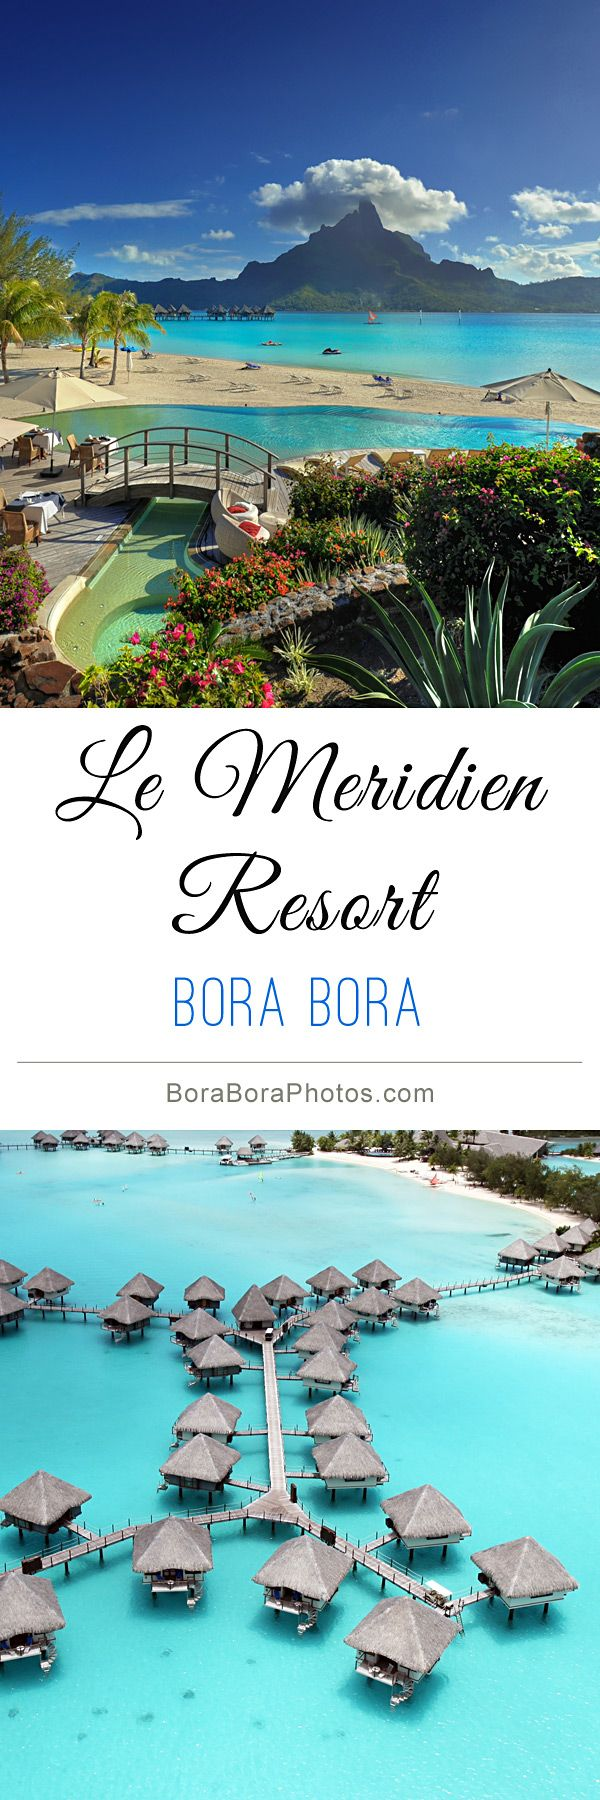 Le Meridien Resort & Spa - The luxury hotel provides a contemporary and elegant design in this exotic French Polynesian getaway, with stunning views of the Bora Bora lagoon and Mount Otemanu. Perfect destination for a honeymoon or family vacation.